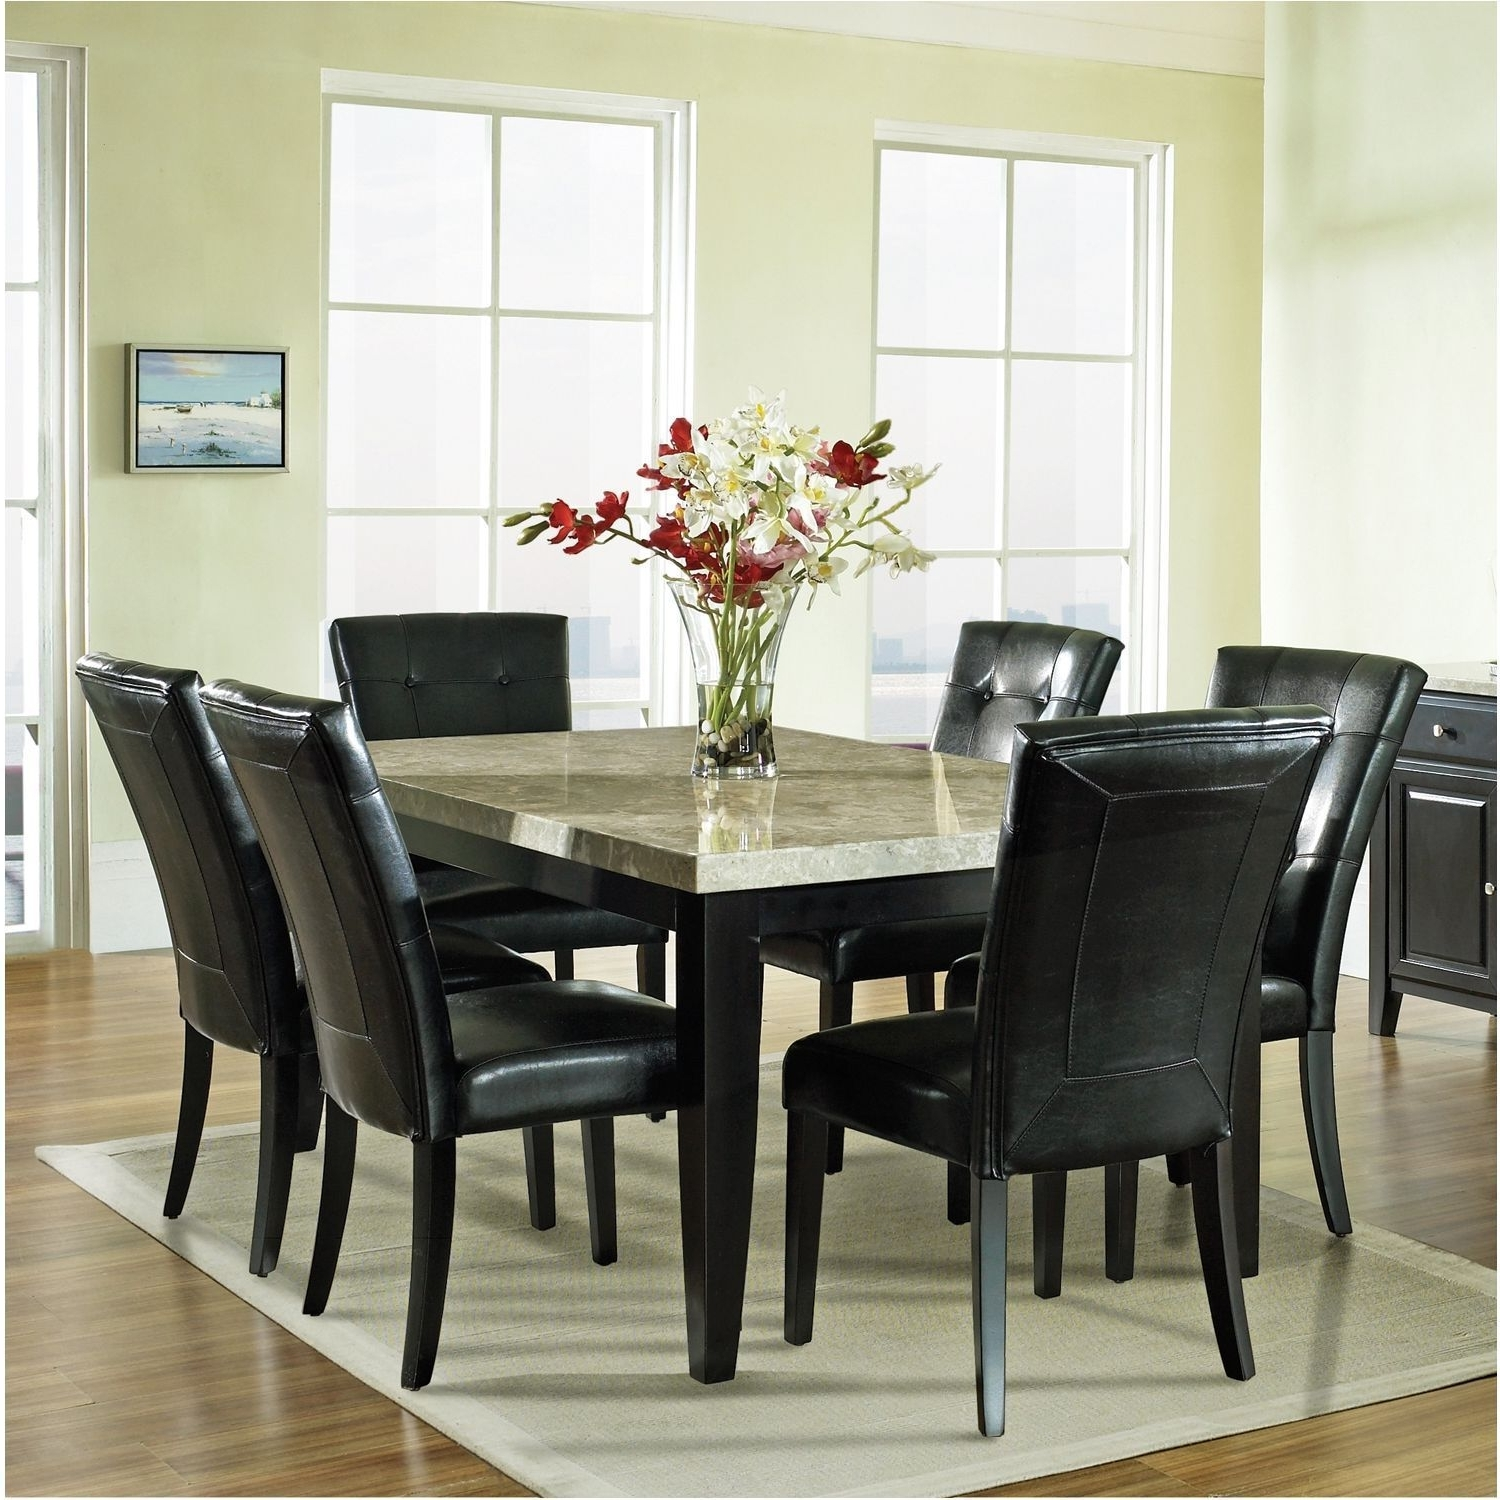 Dining Sets with regard to Cora 7 Piece Dining Sets